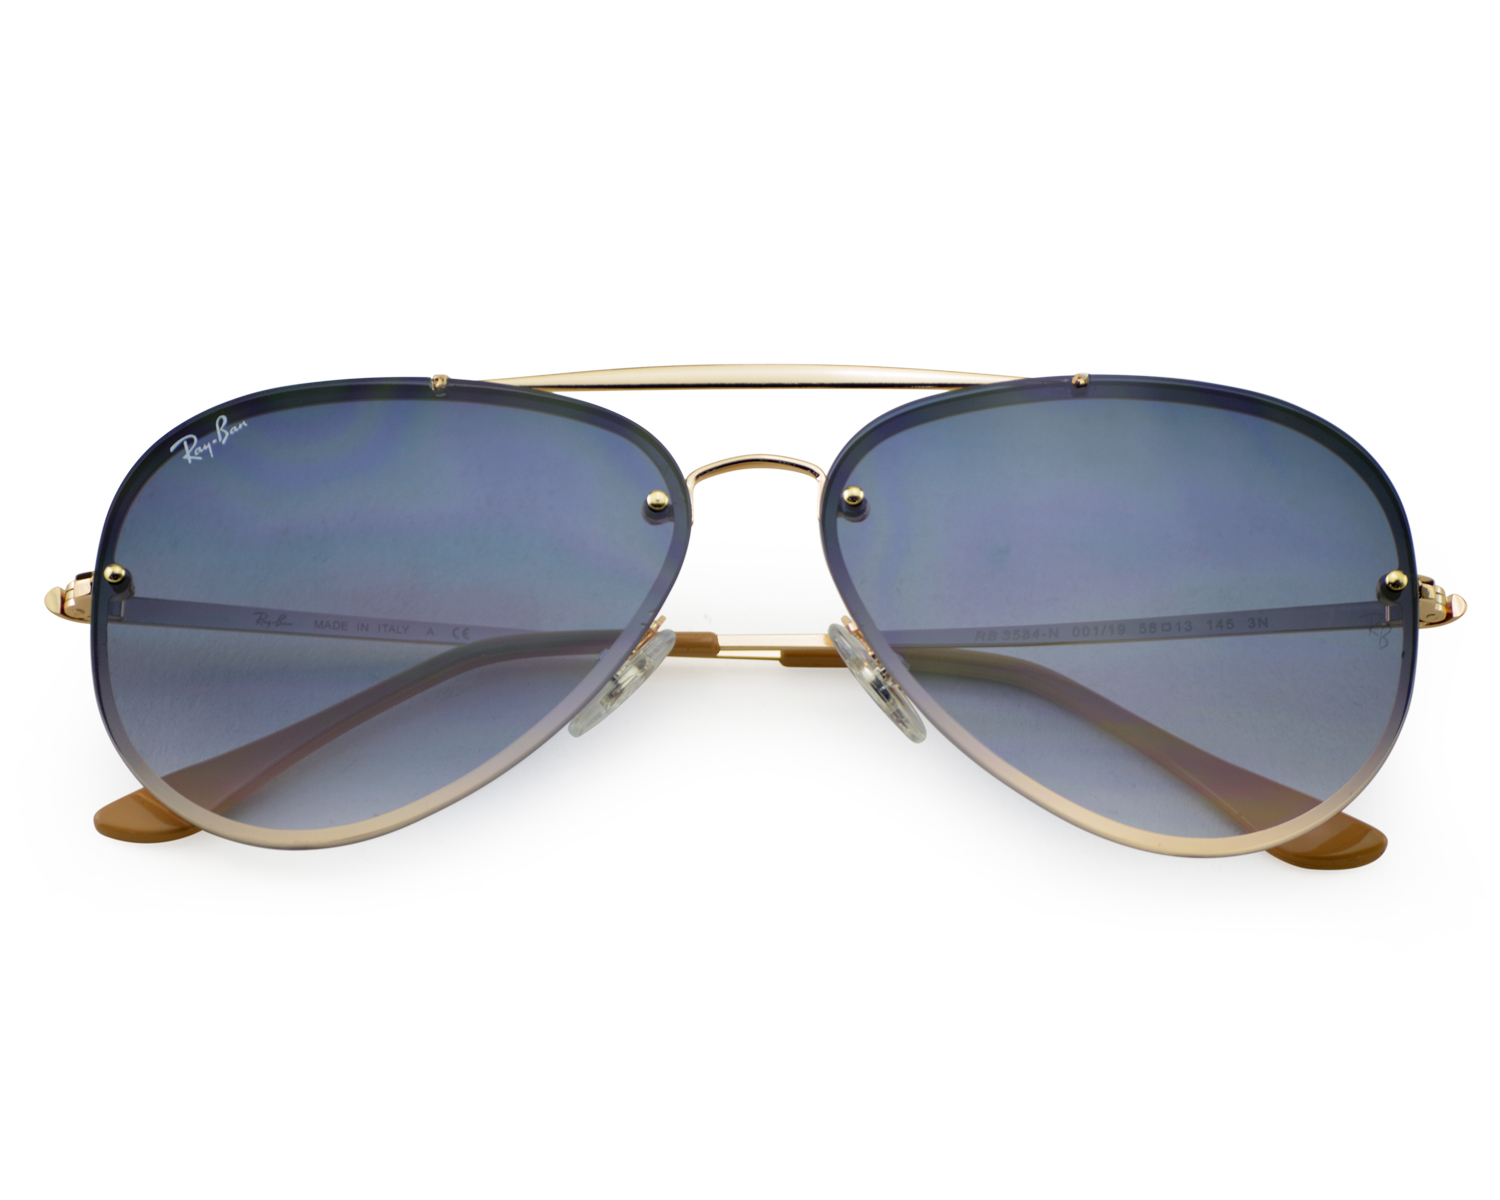 51e71c447a Ray-Ban RB3584N Blaze Aviator 001 19 Gold Frame Light Blue Gradient Lenses  Unisex Sunglasses 58mm